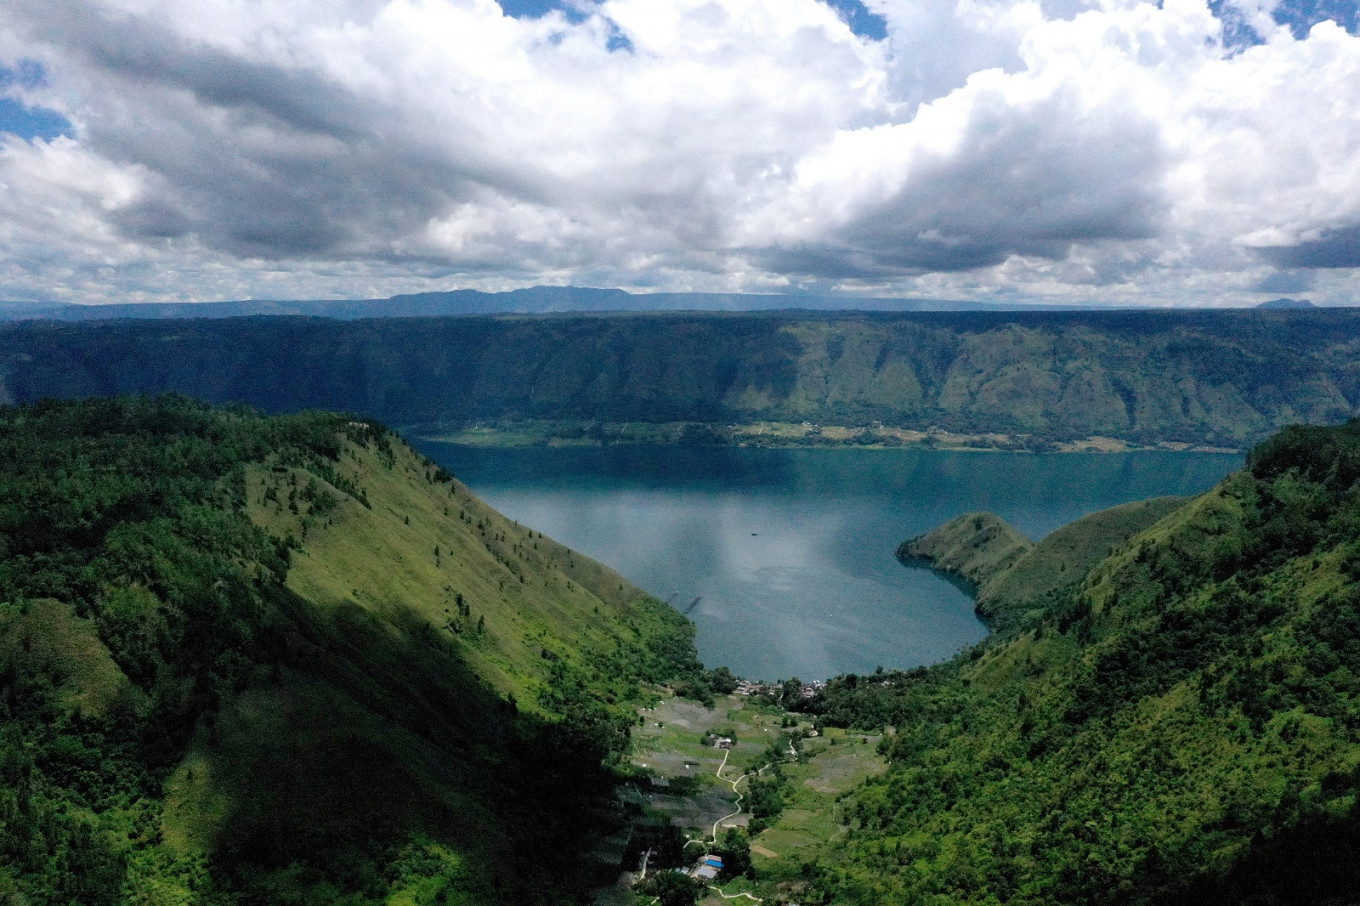 More than Rp 2 billion worth of fish found dead in Lake Toba amid extreme weather